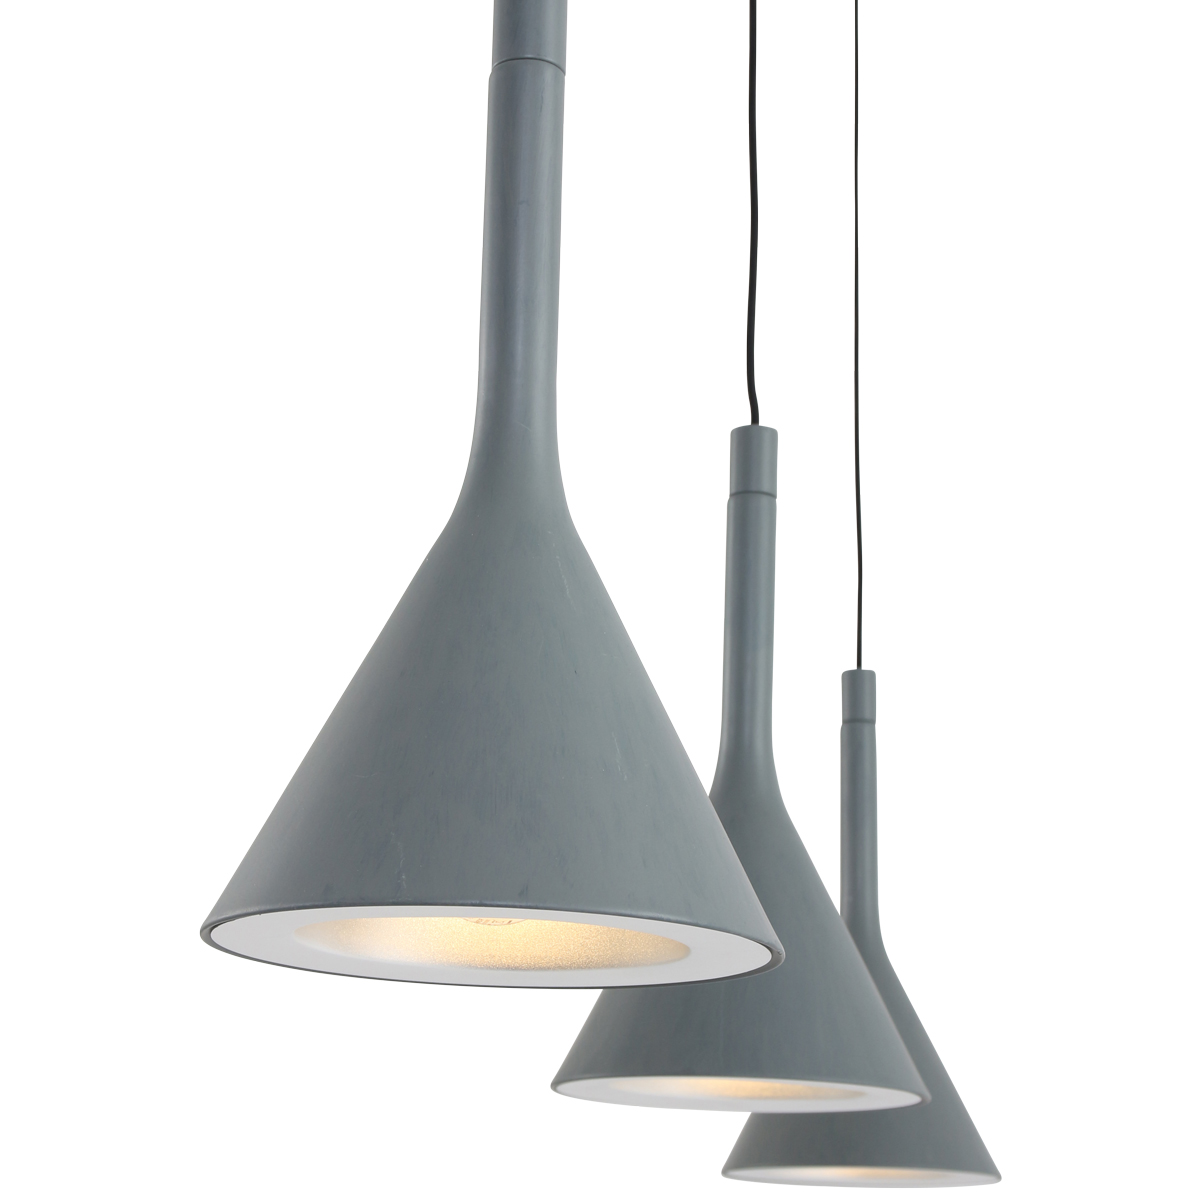 Suspension Moderne Suspension Moderne Gris Nathalja